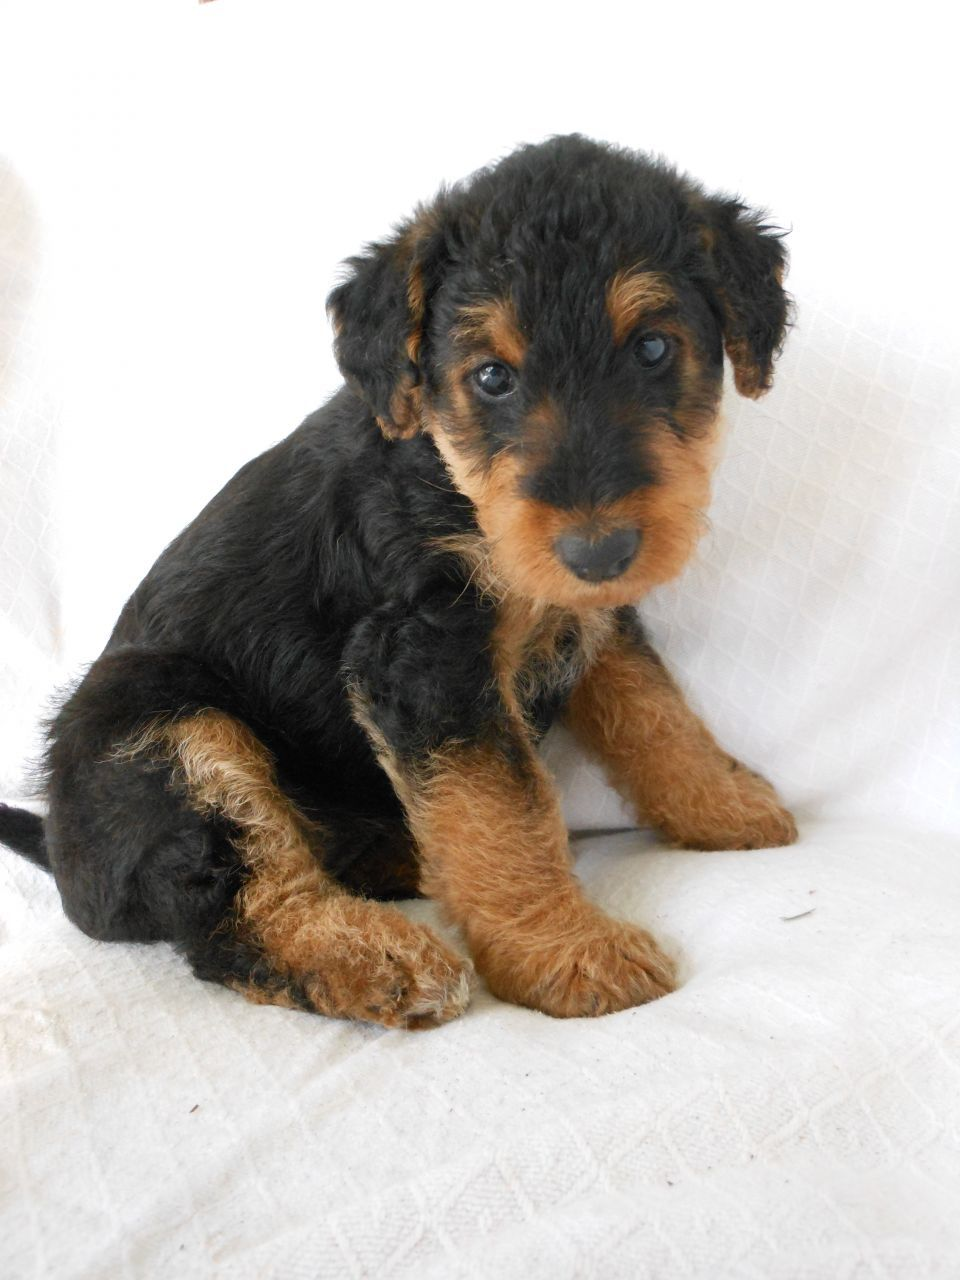 Pin By Joan On Puppies In 2020 With Images Airedale Puppy Airedale Terrier Puppies Airedale Terrier